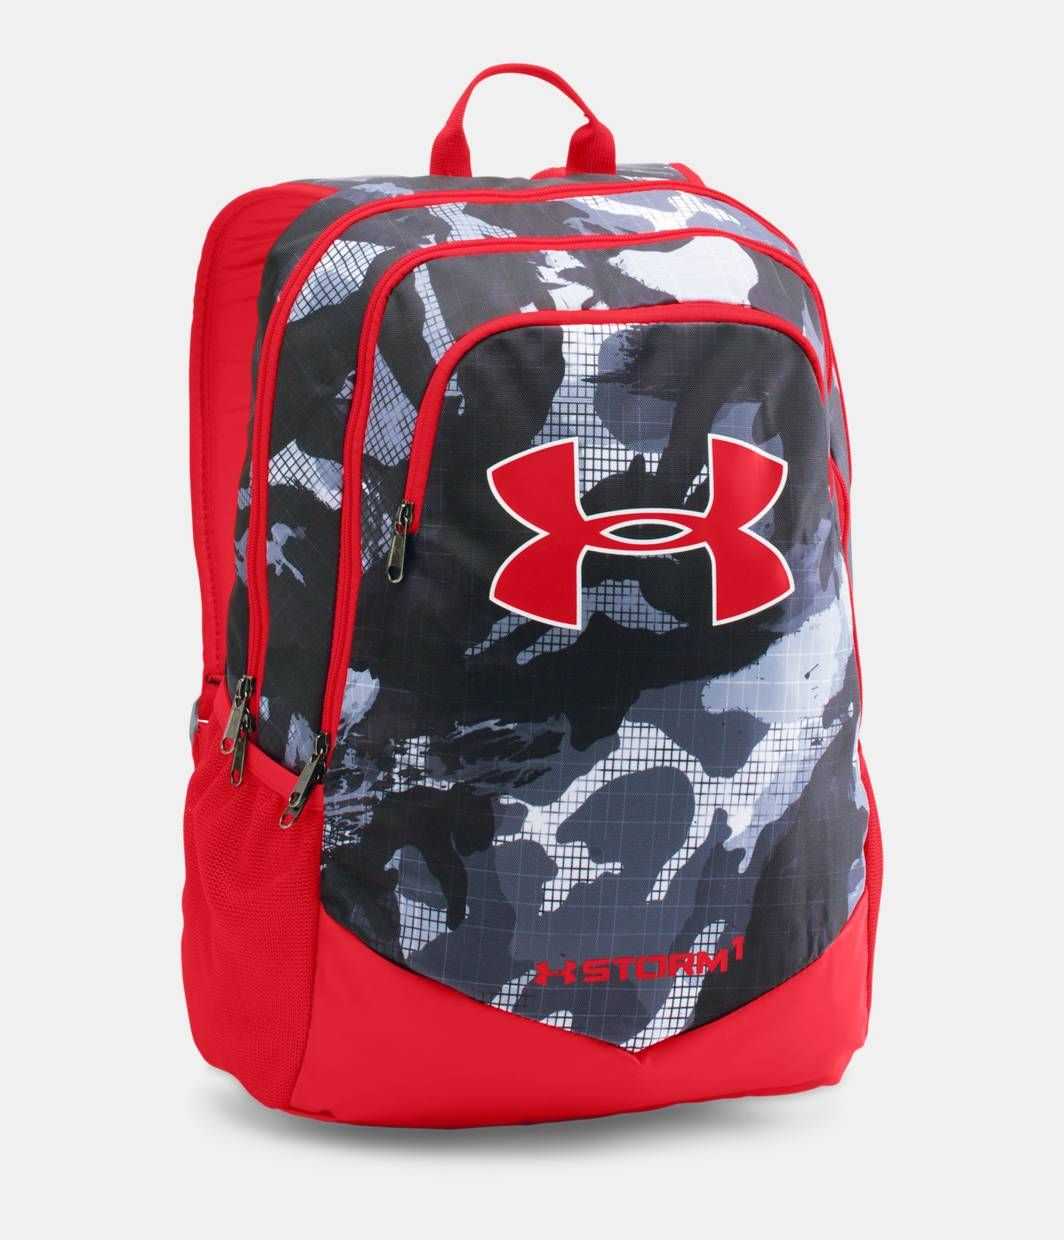 423ff846de Shop Under Armour for Boys  UA Storm Scrimmage Backpack in our Unisex-Youth  Backpacks department. Free shipping is available in US.